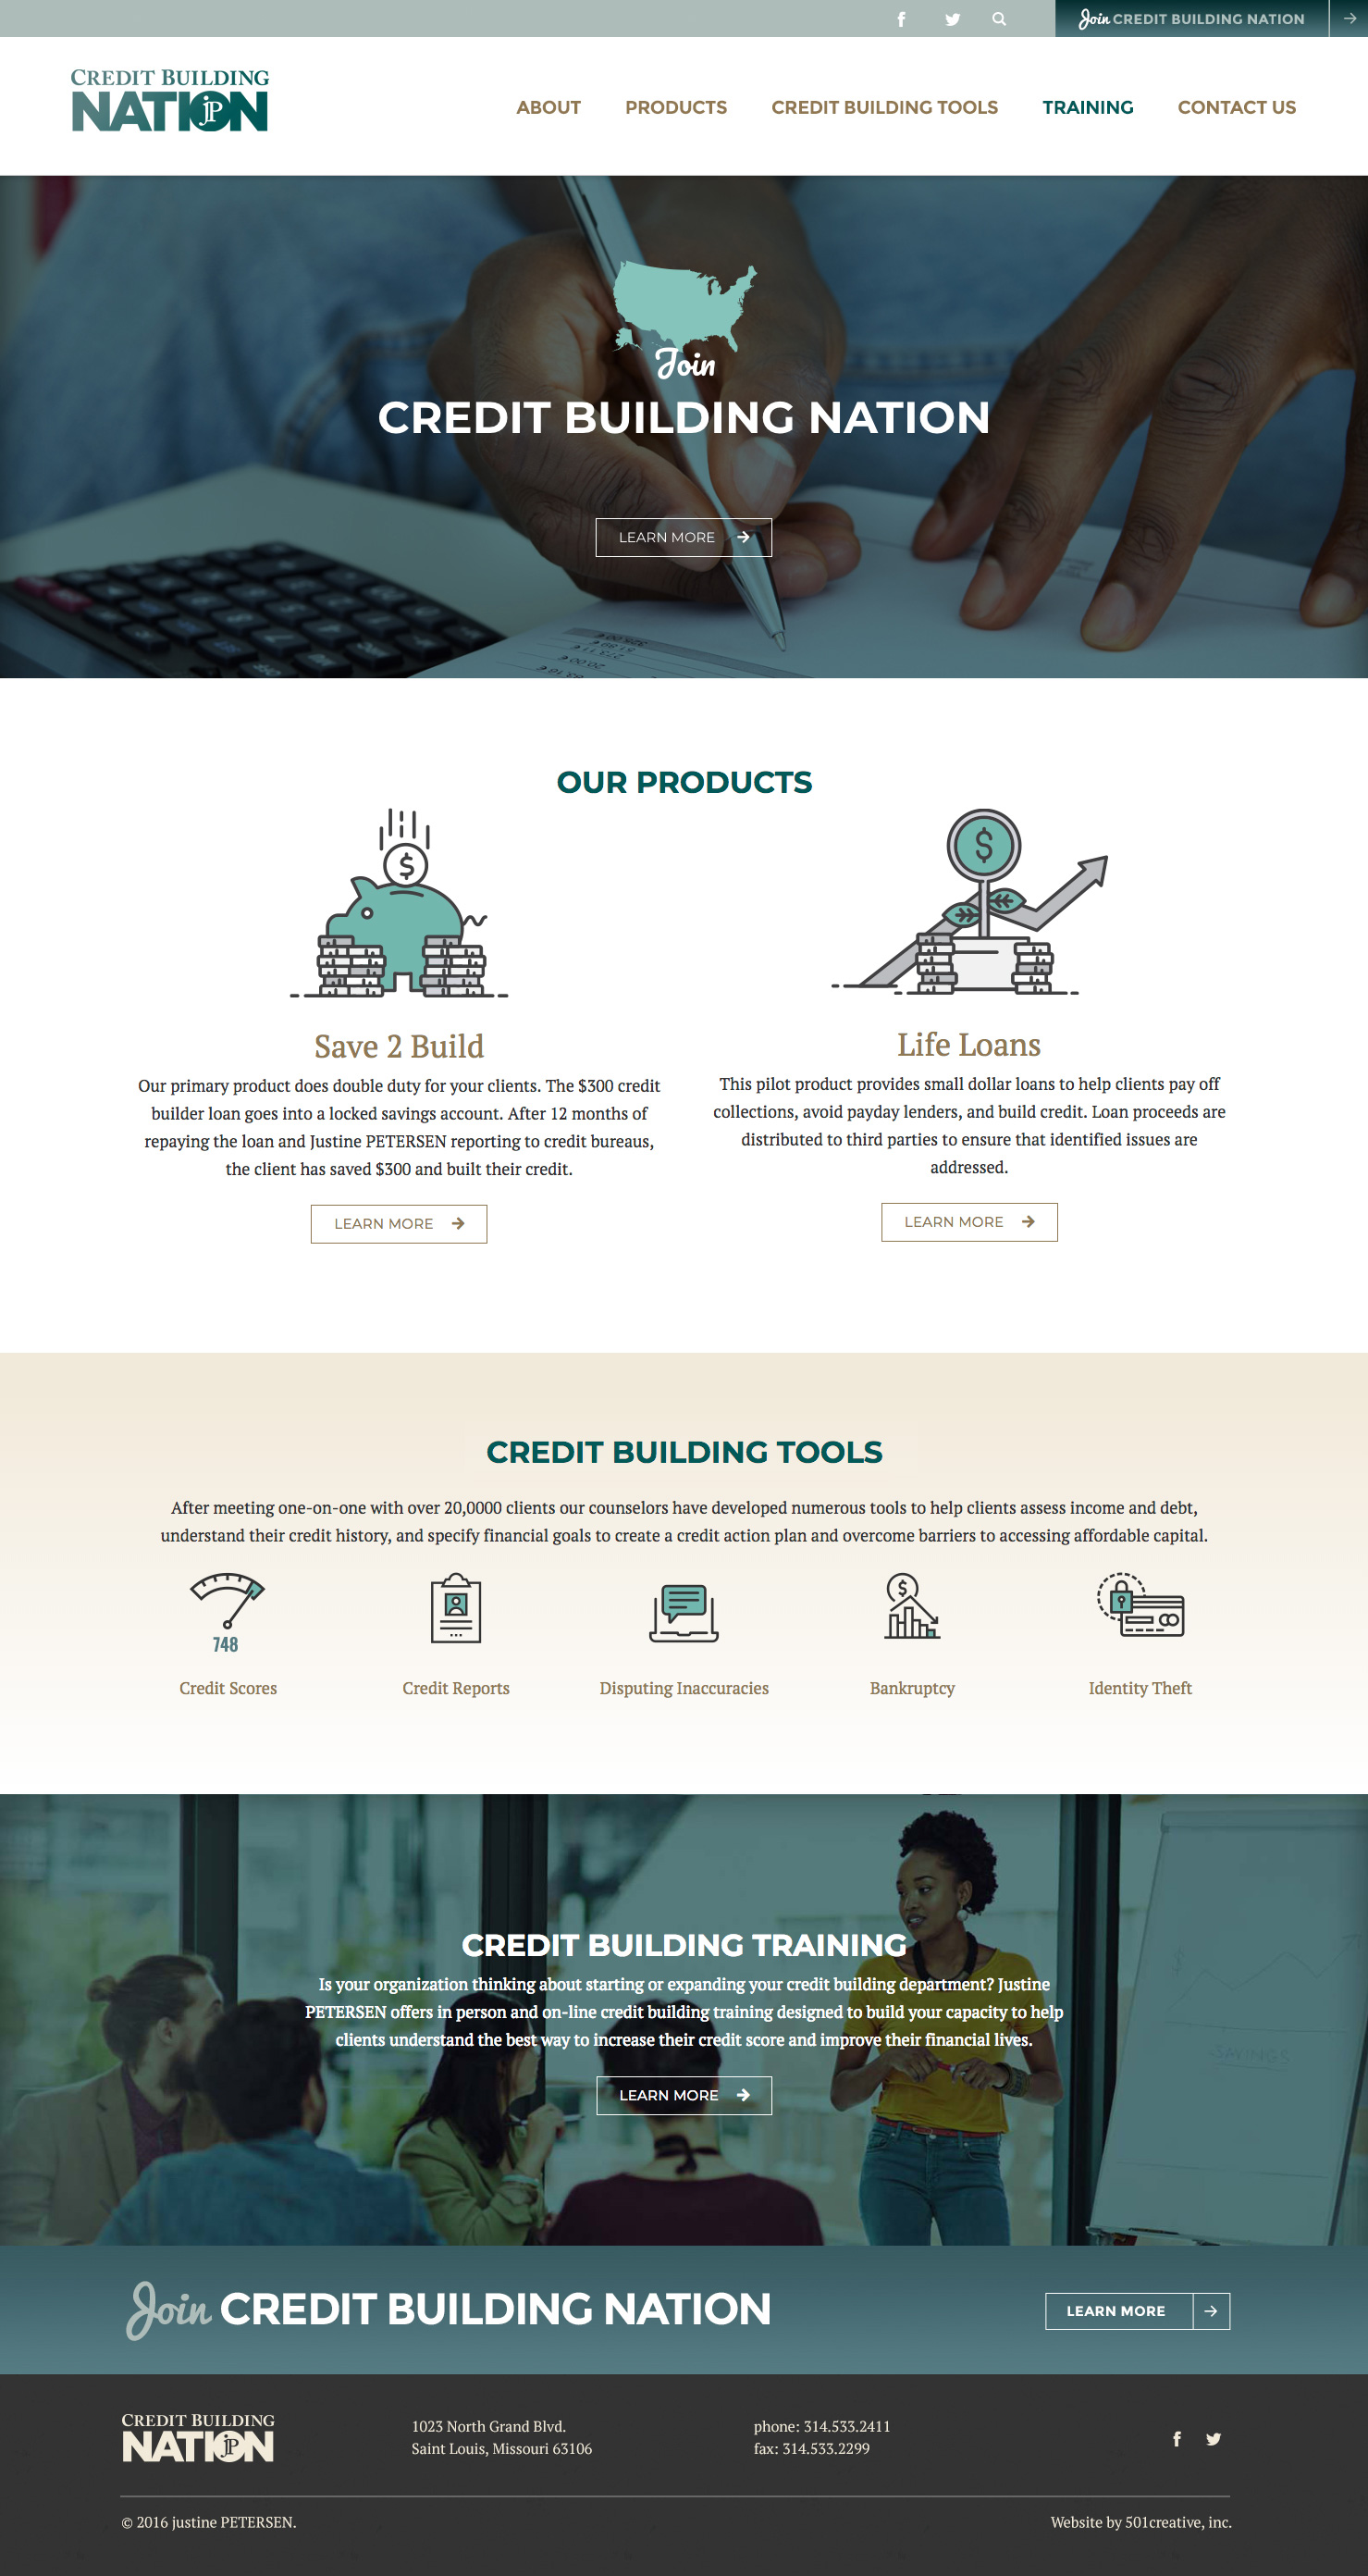 Justine Petersen's Credit Building Nation website home page